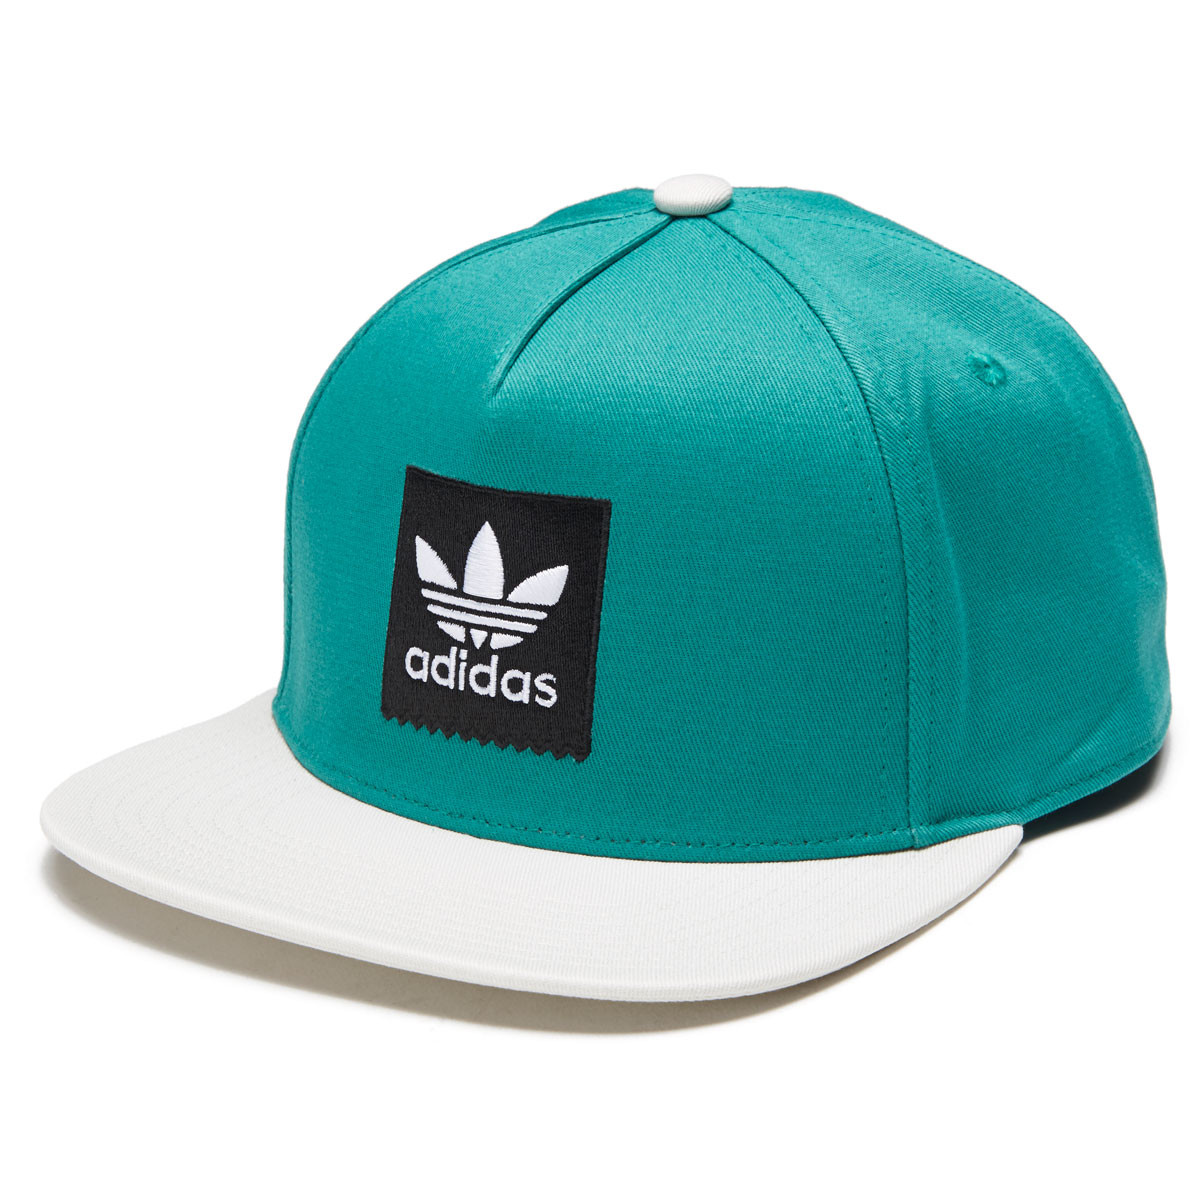 3208142071a7b Adidas 2 Tone Snapback Hat - Action Green Raw White